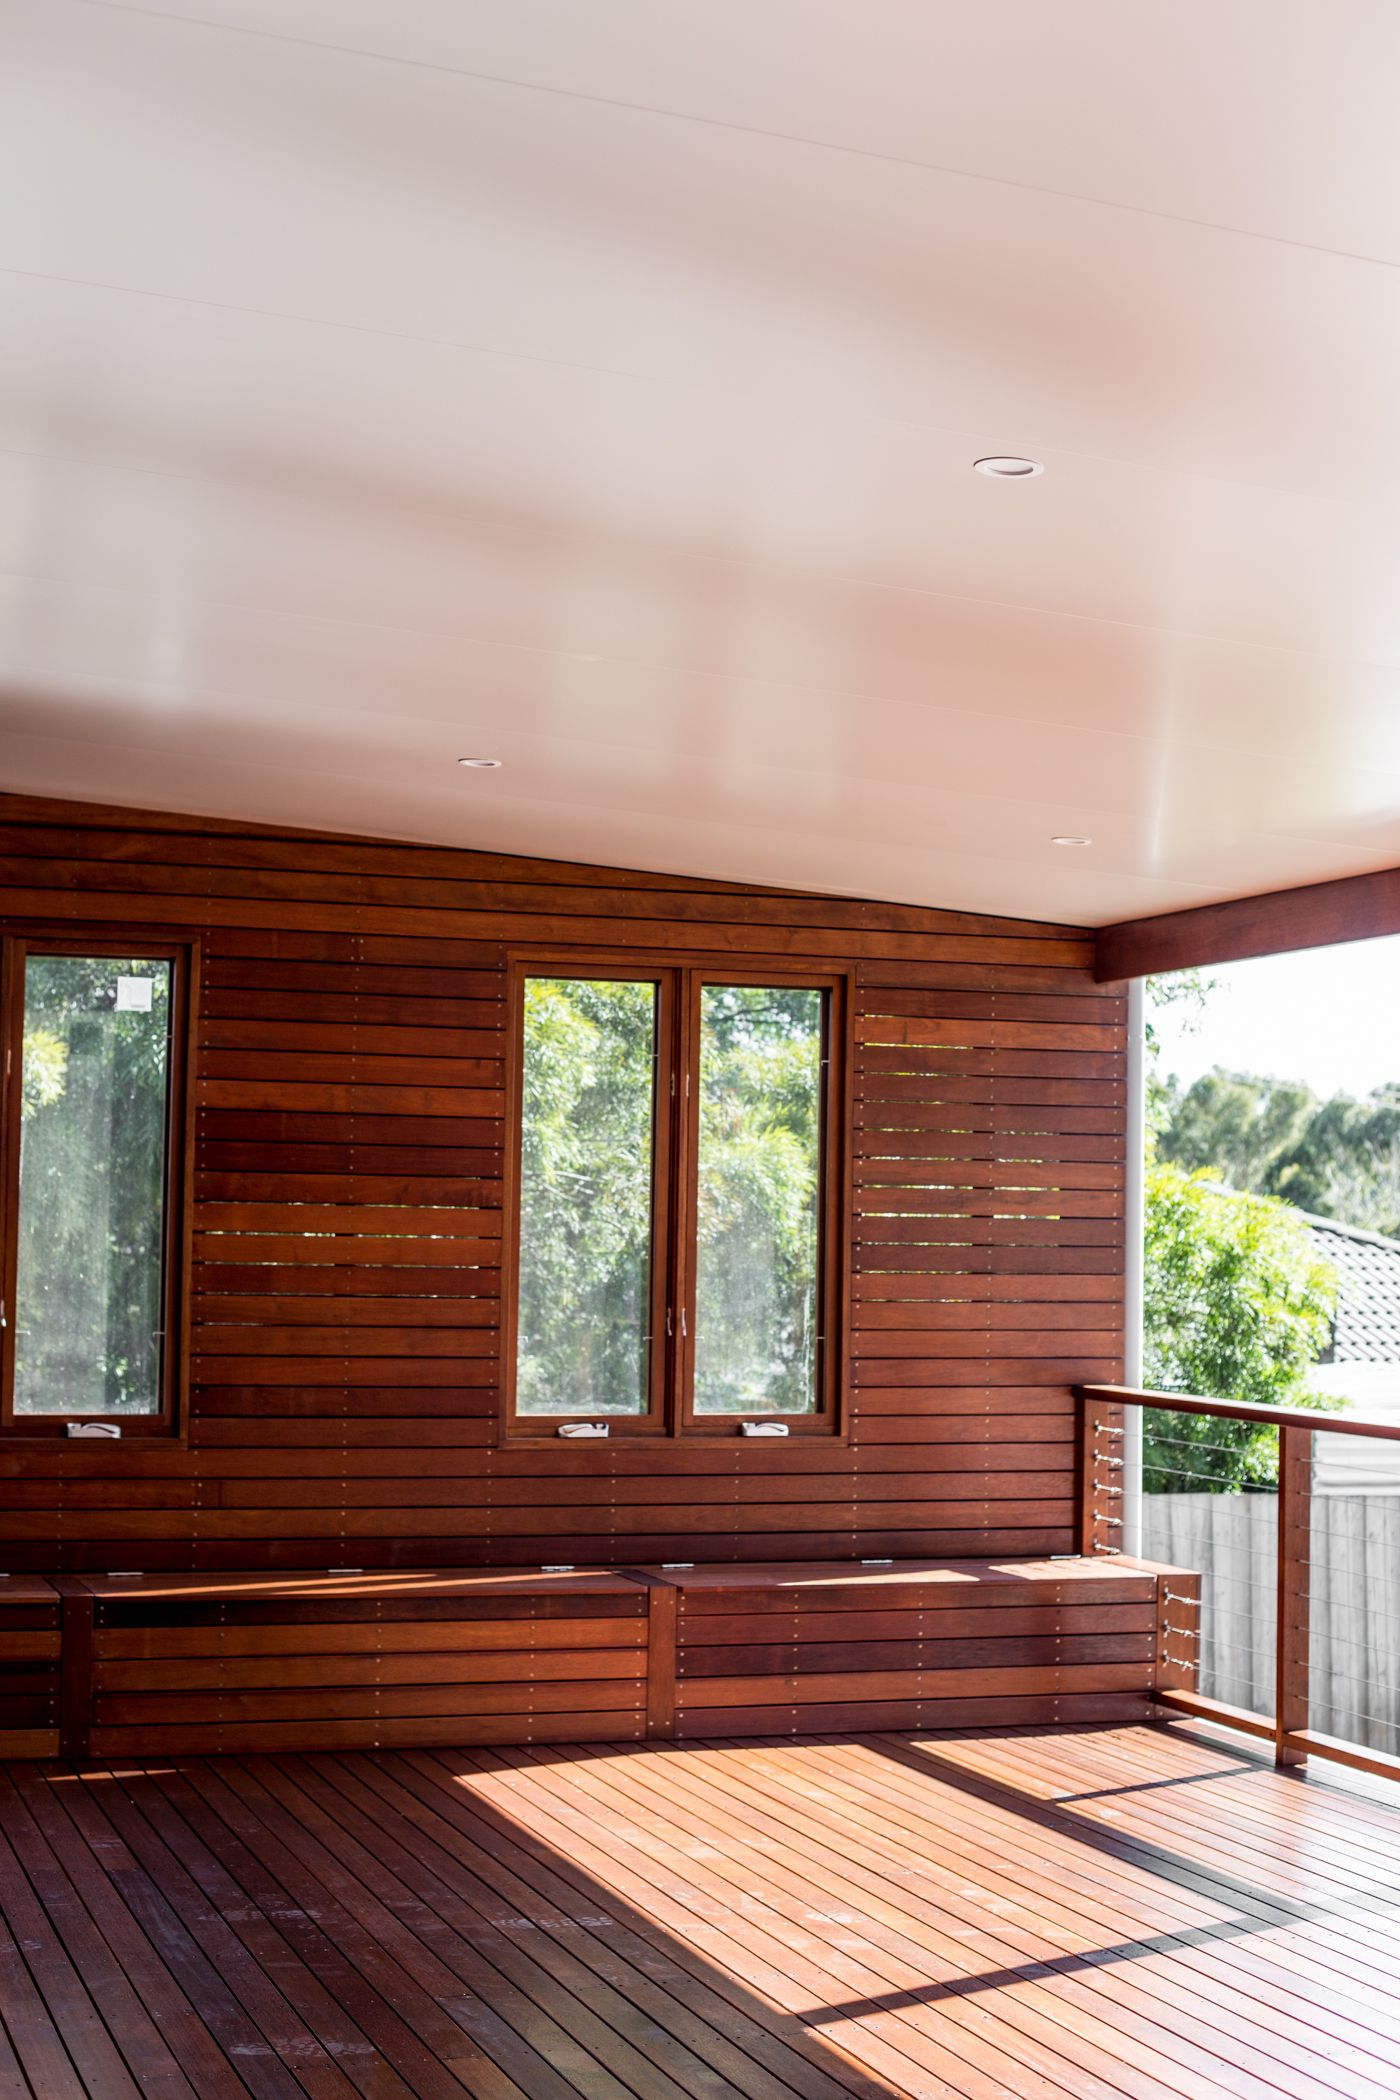 Deck Extension In Melbourne Featuring Merbau Screening, Deck And Storage